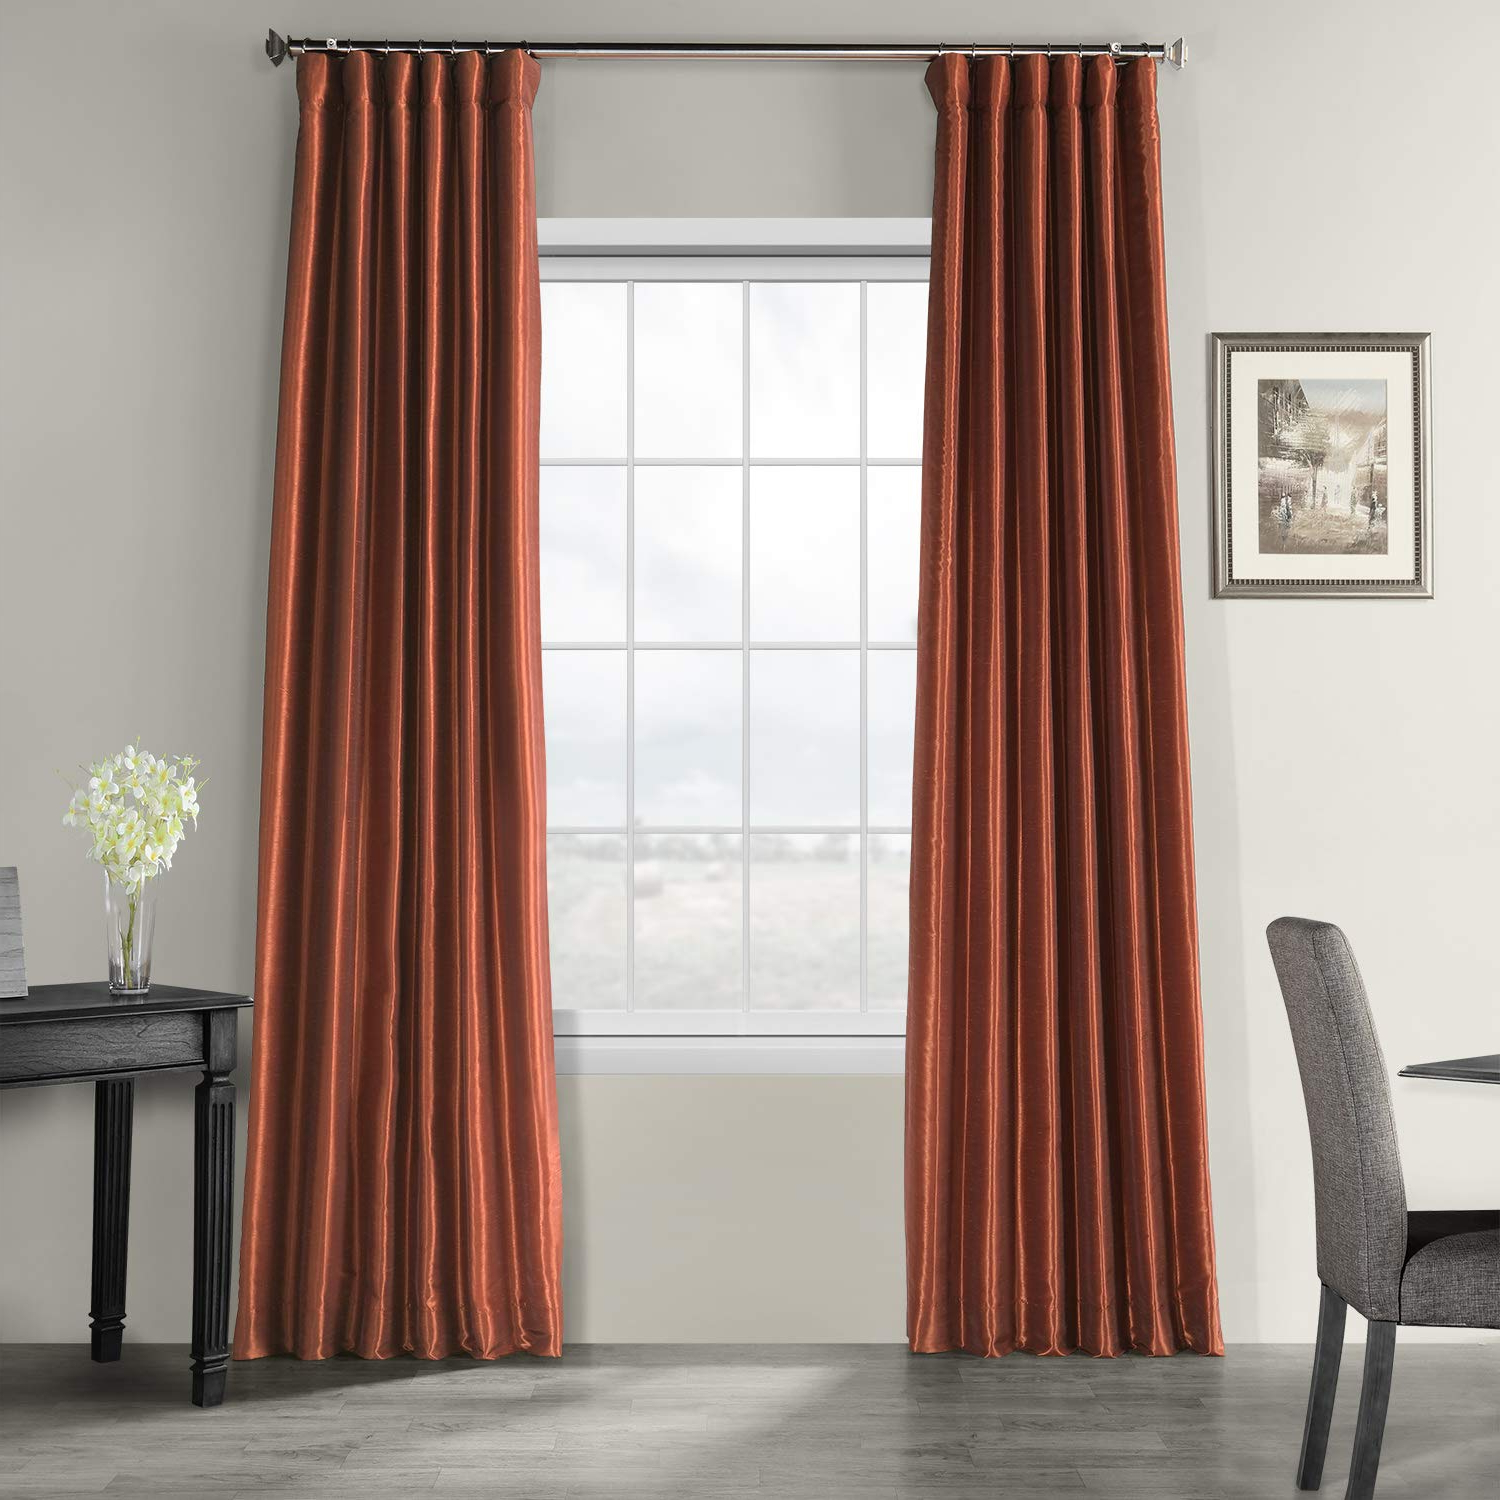 Half Price Drapes Pdch Kbs16 96 Vintage Textured Faux Dupioni Silk Curtain,  50 X 96, Burnt Orange Inside Well Liked Silver Vintage Faux Textured Silk Curtain Panels (View 6 of 20)